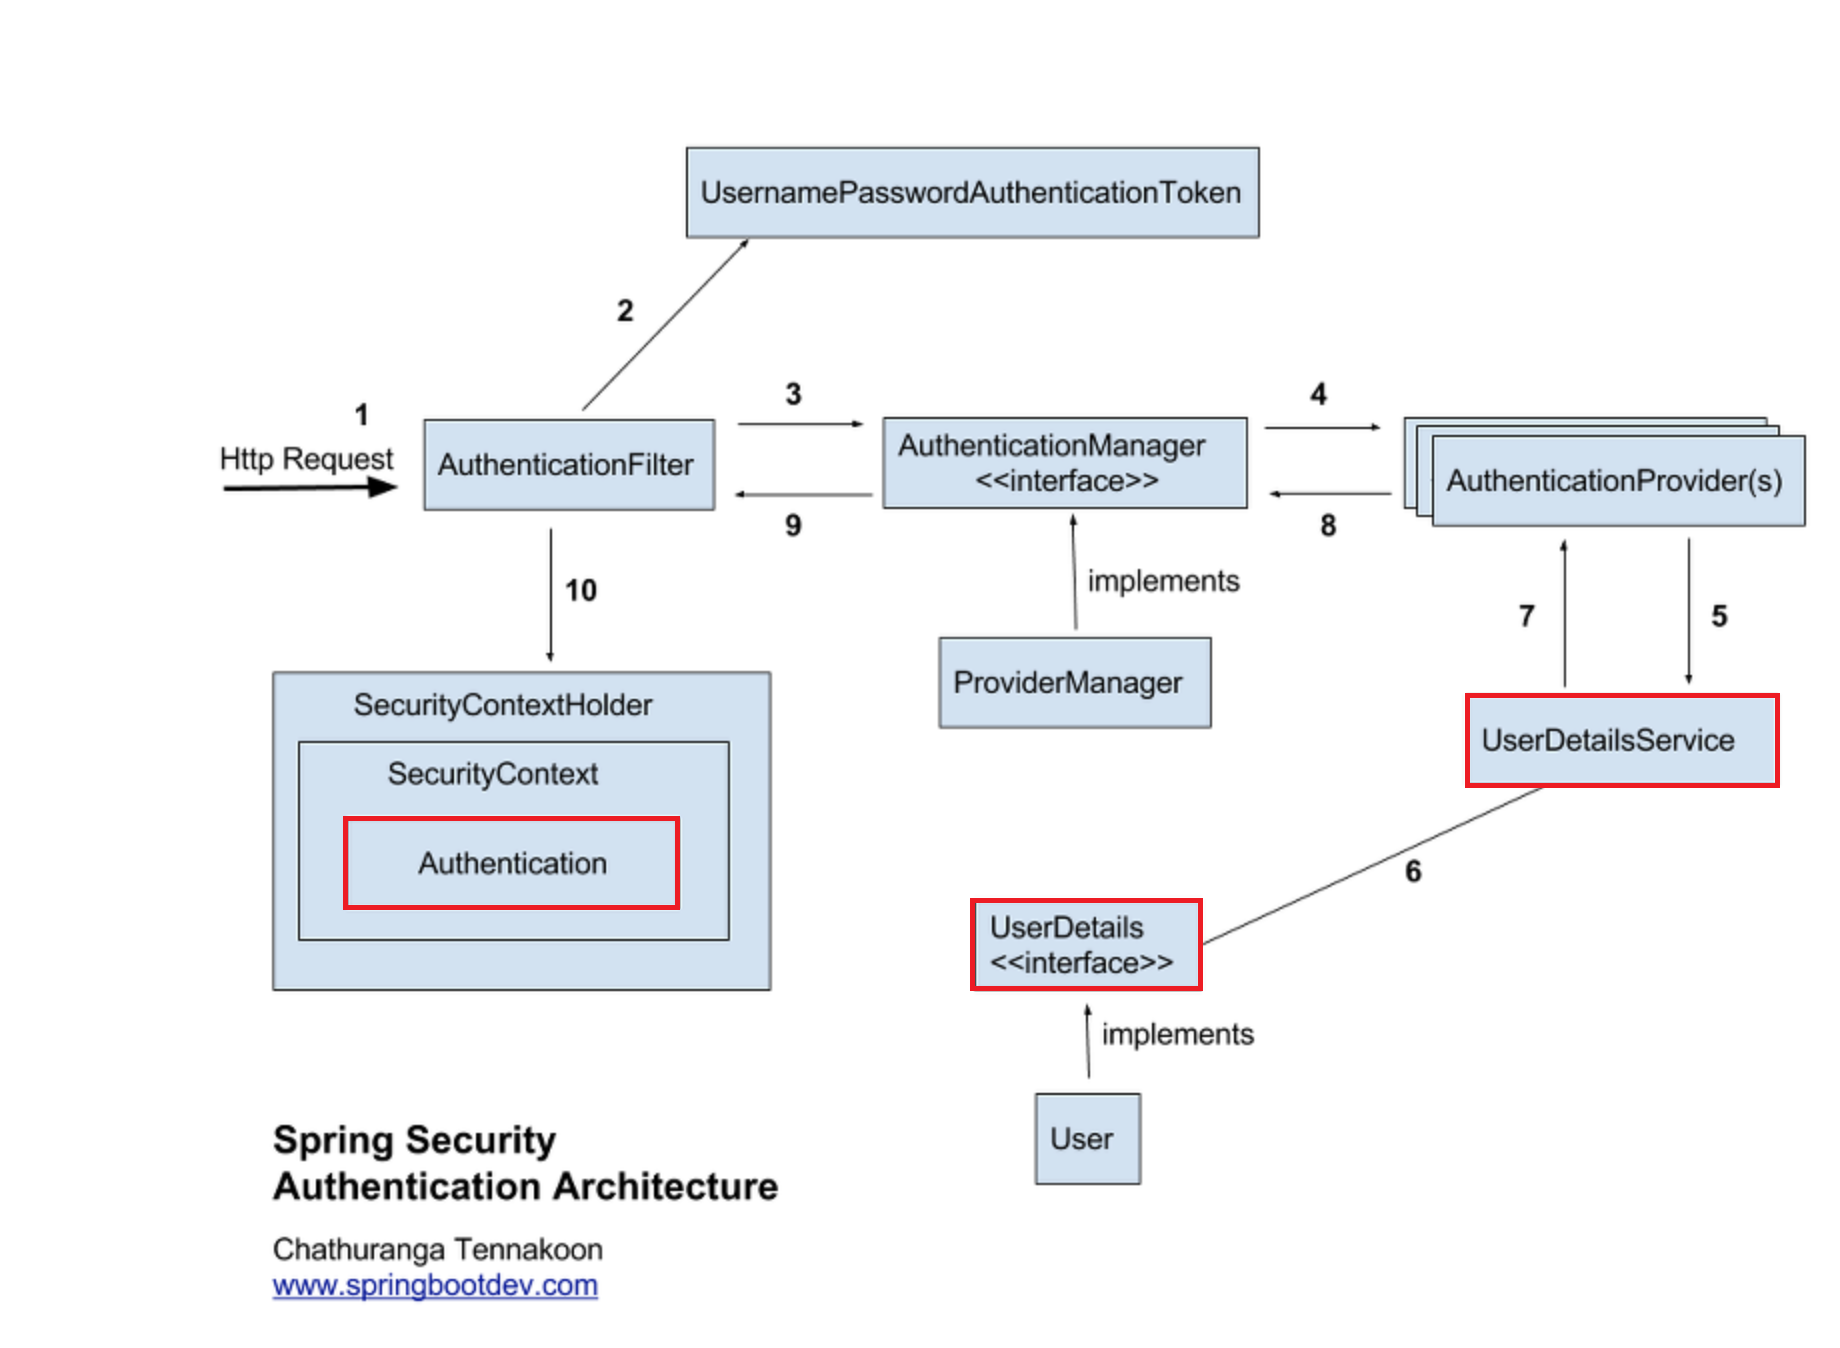 Spring Security Authentication Architecture